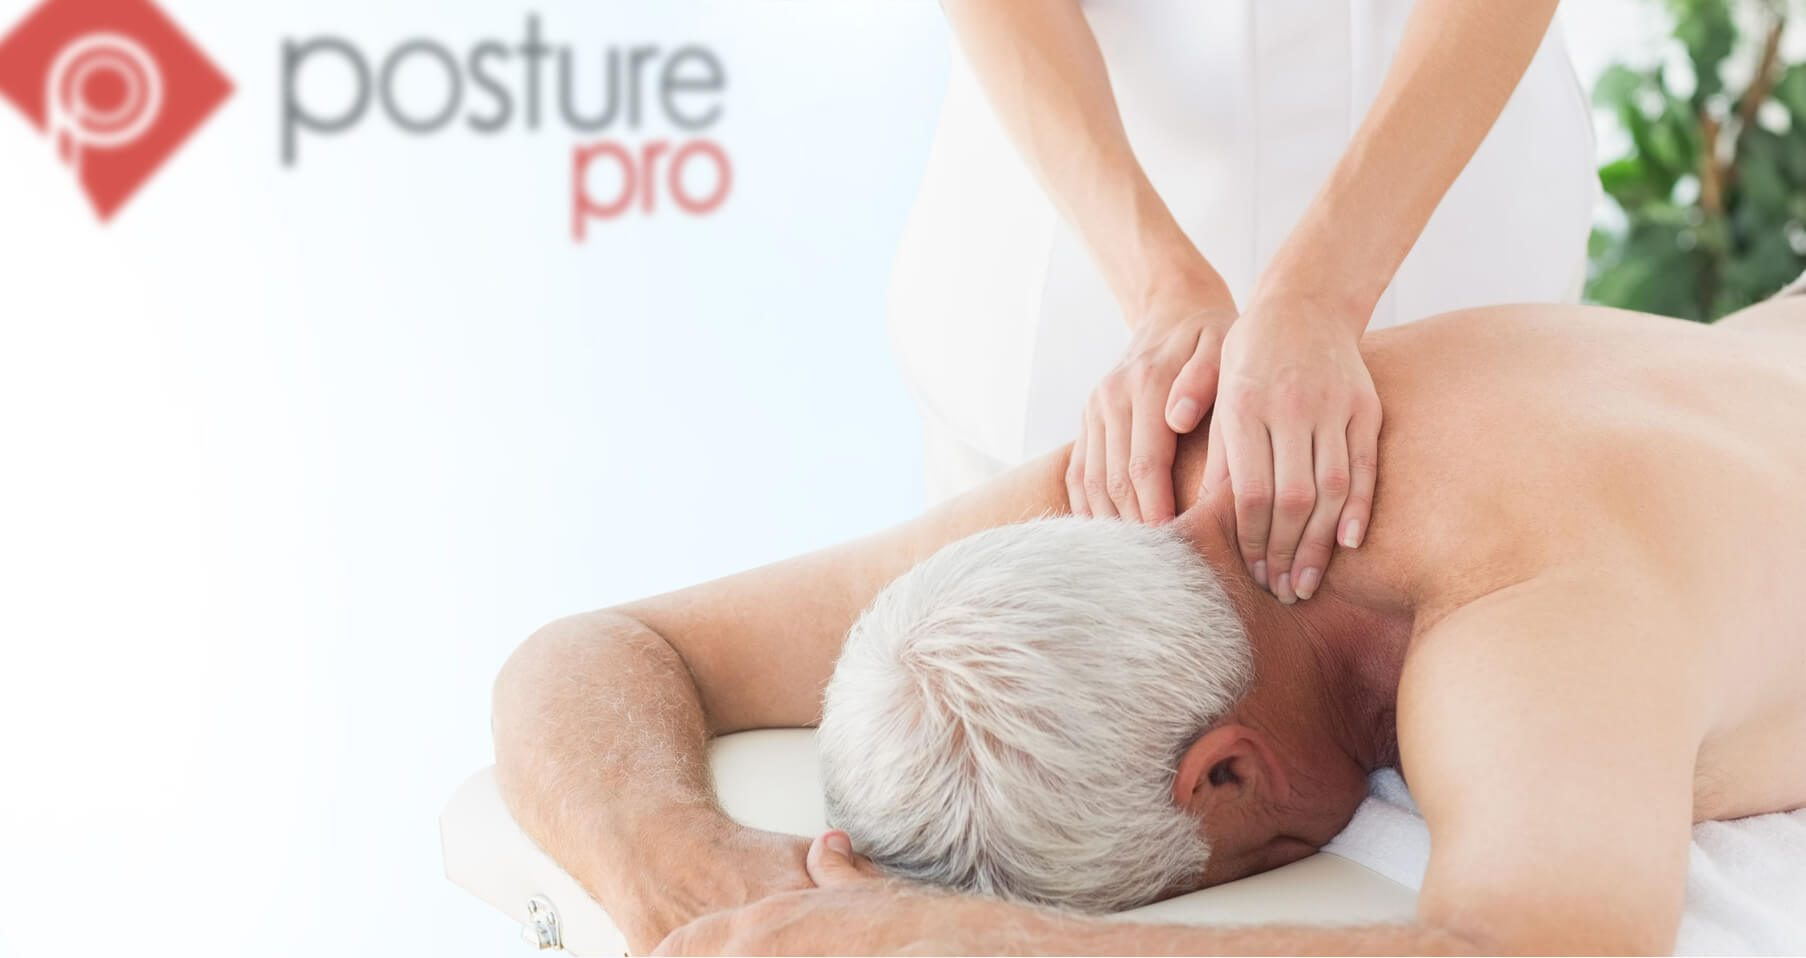 Posturepro Physiotherapy Adelaide image of woman treating elderly man for neck pain